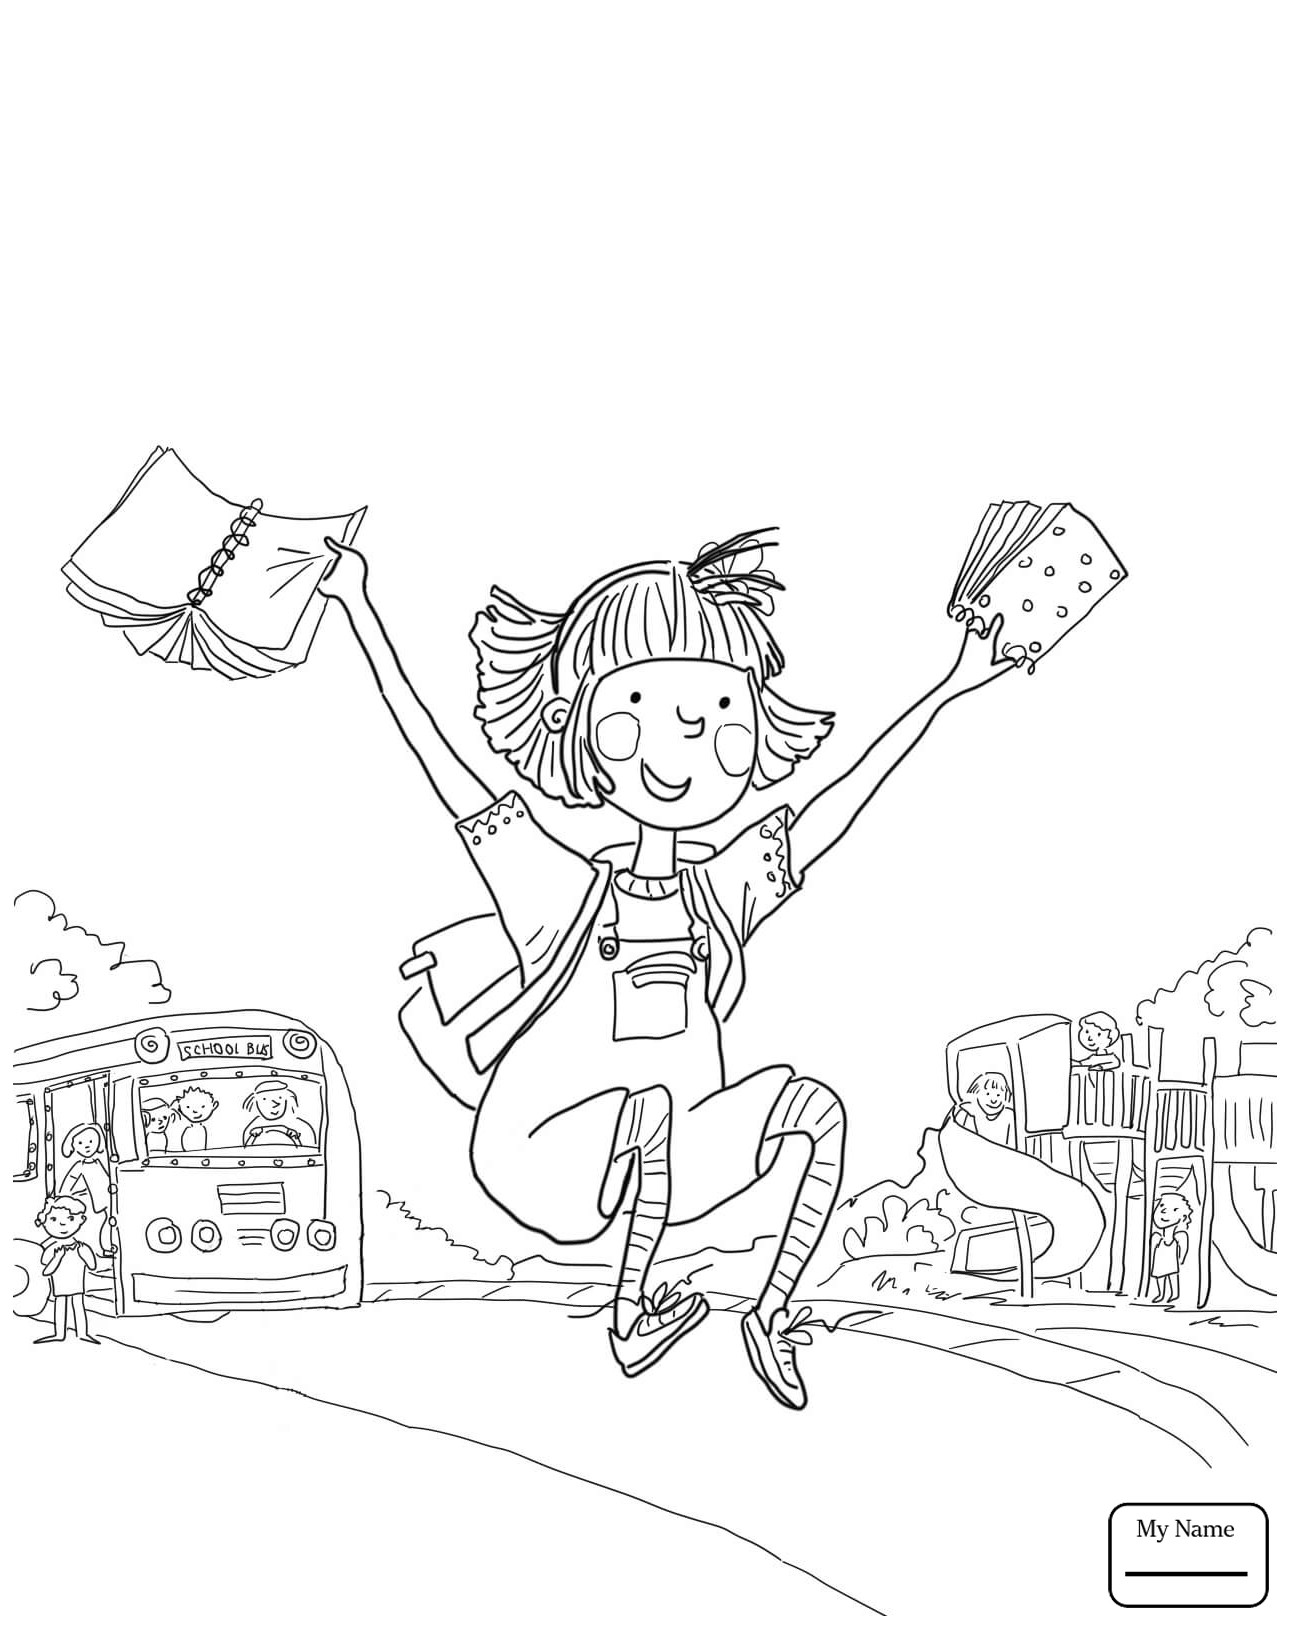 Amelia Bedelia Coloring Page At Getcolorings